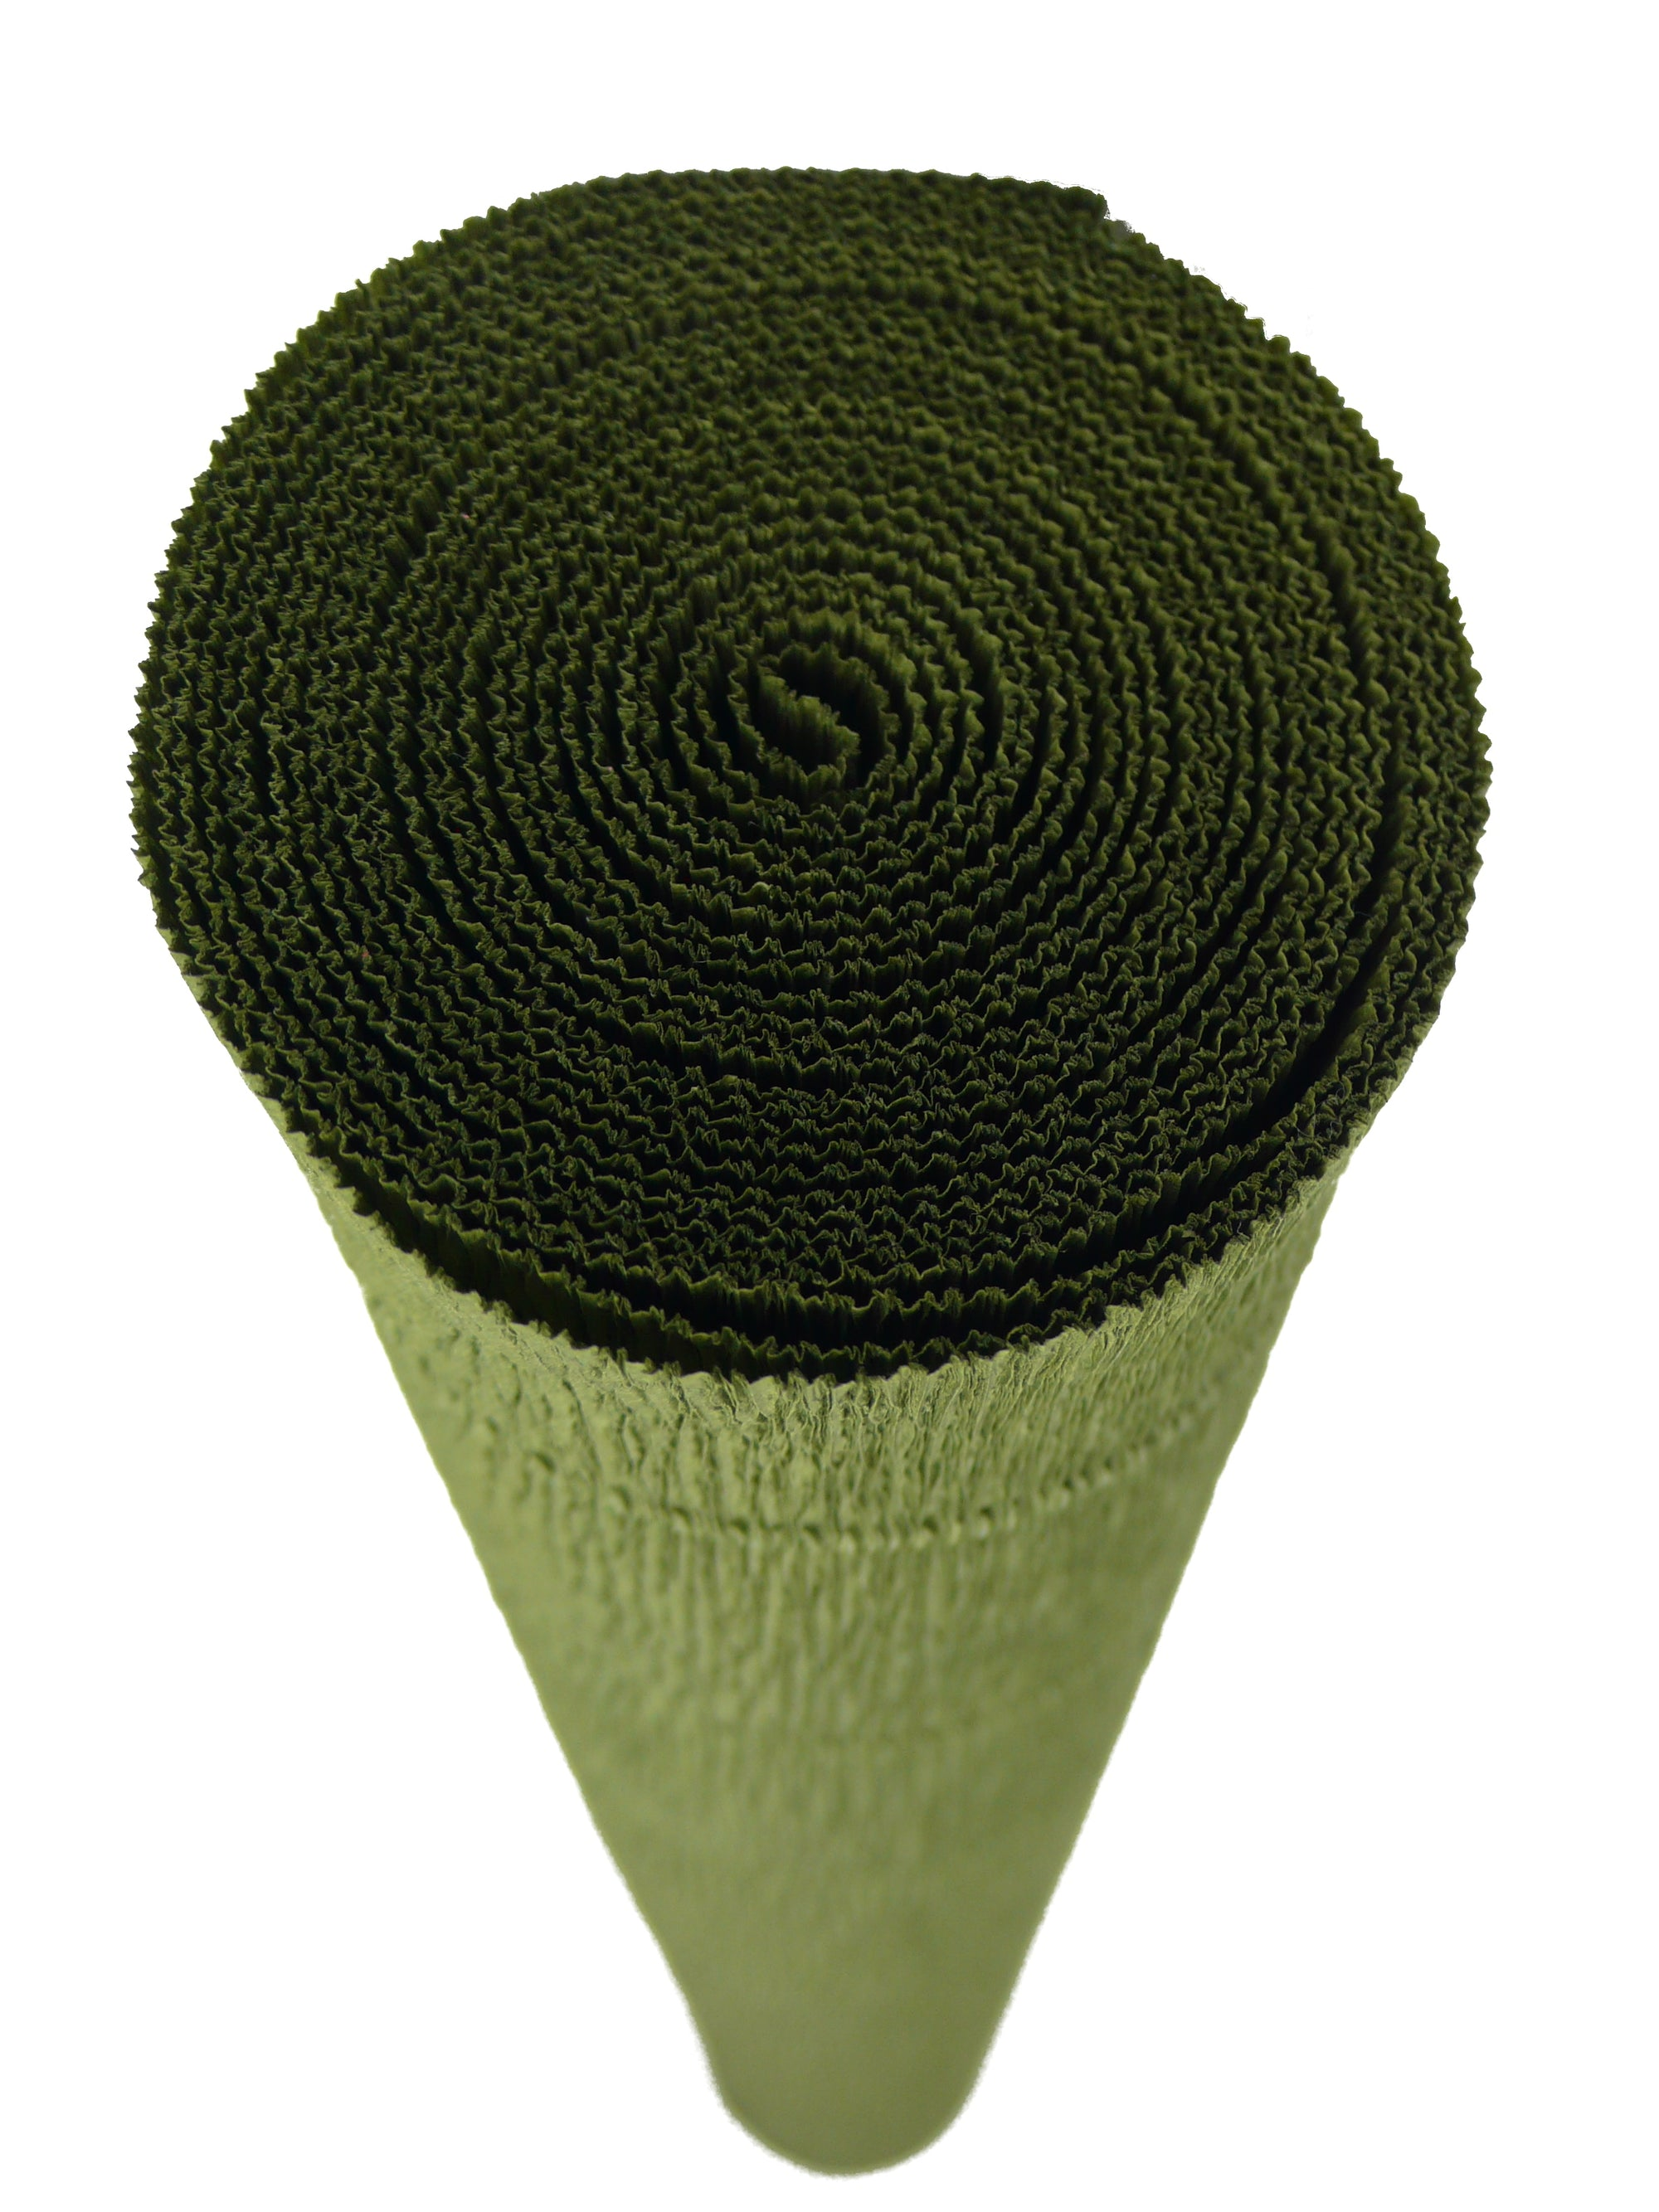 Italian Crepe Paper roll 180 gram - 17A/8 OLIVE GREEN BY TIFFANIE TURNER